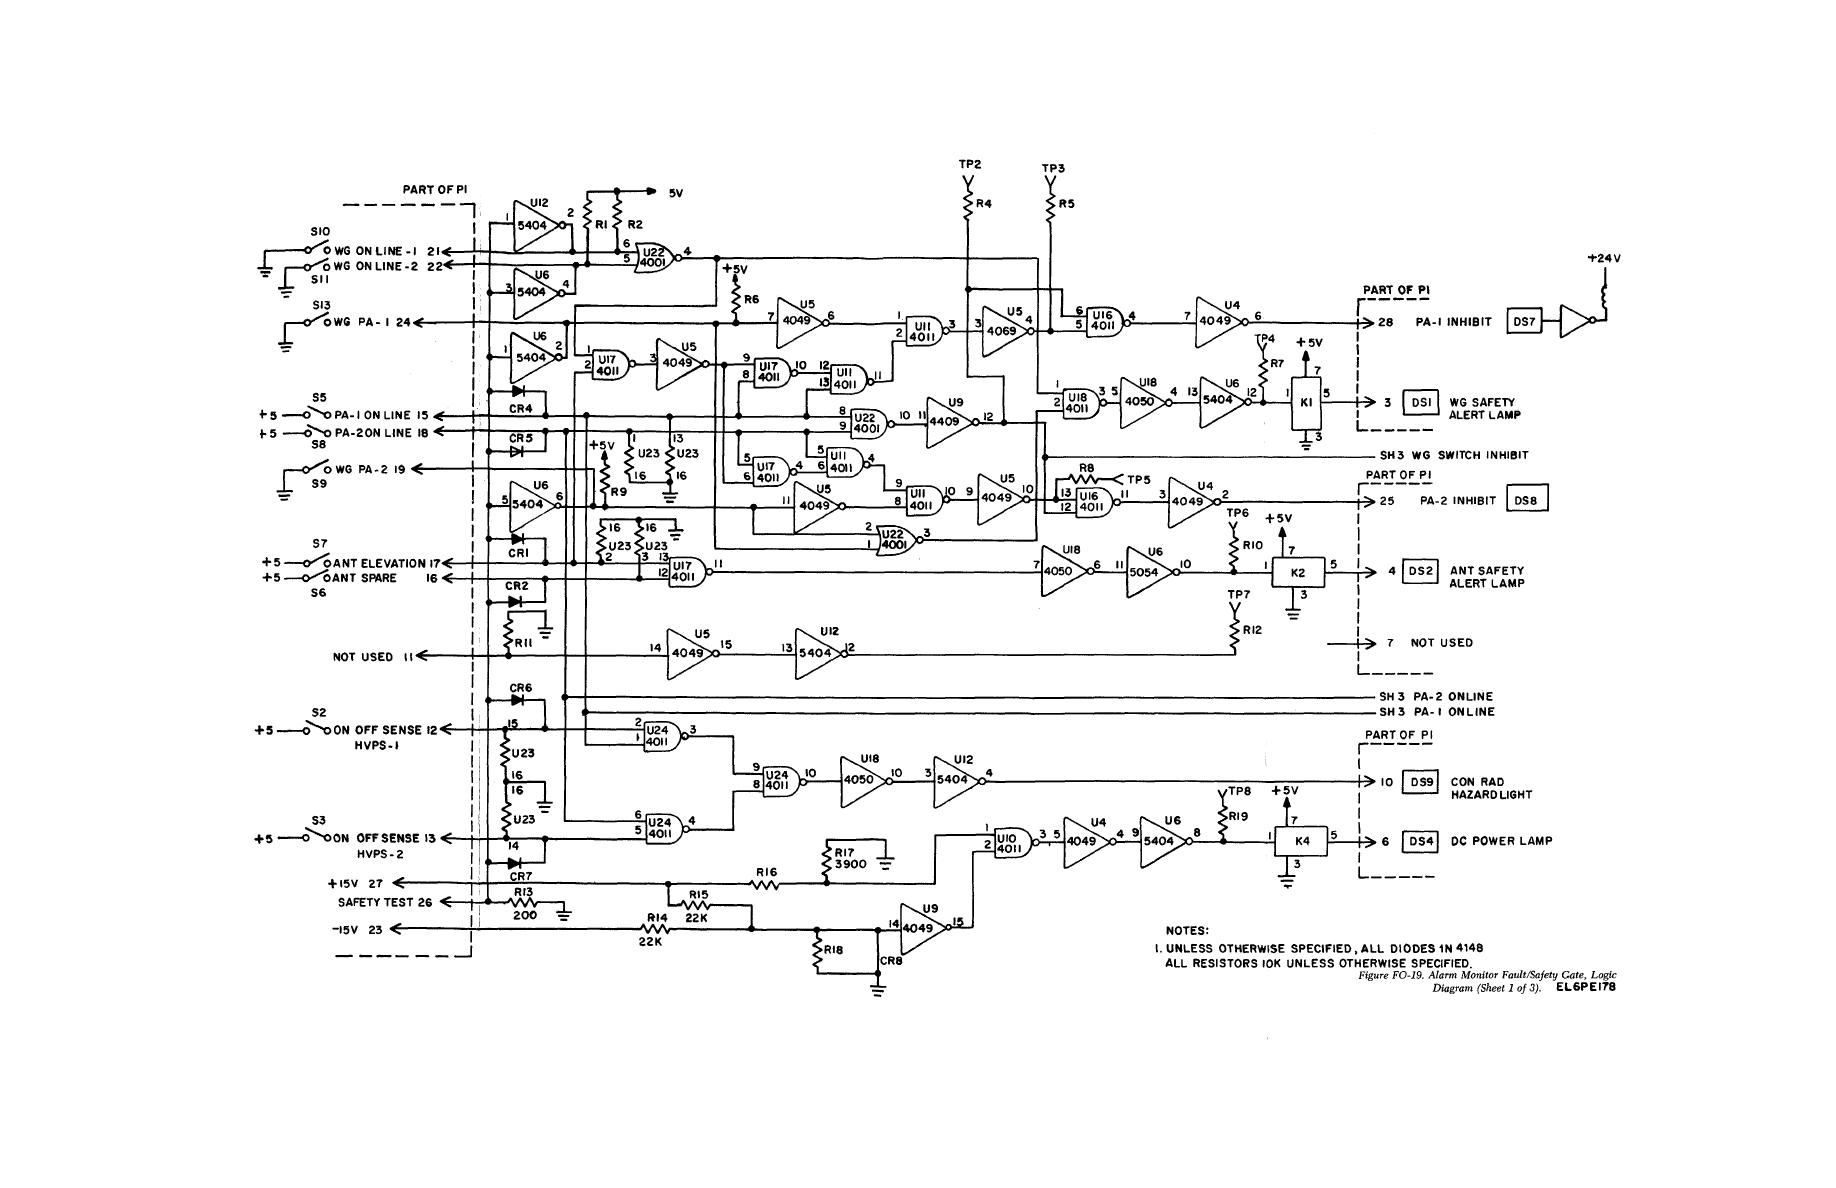 Alarm Monitor Fault/Safety Gate, Logic Diagram (Sheet 1of 3).